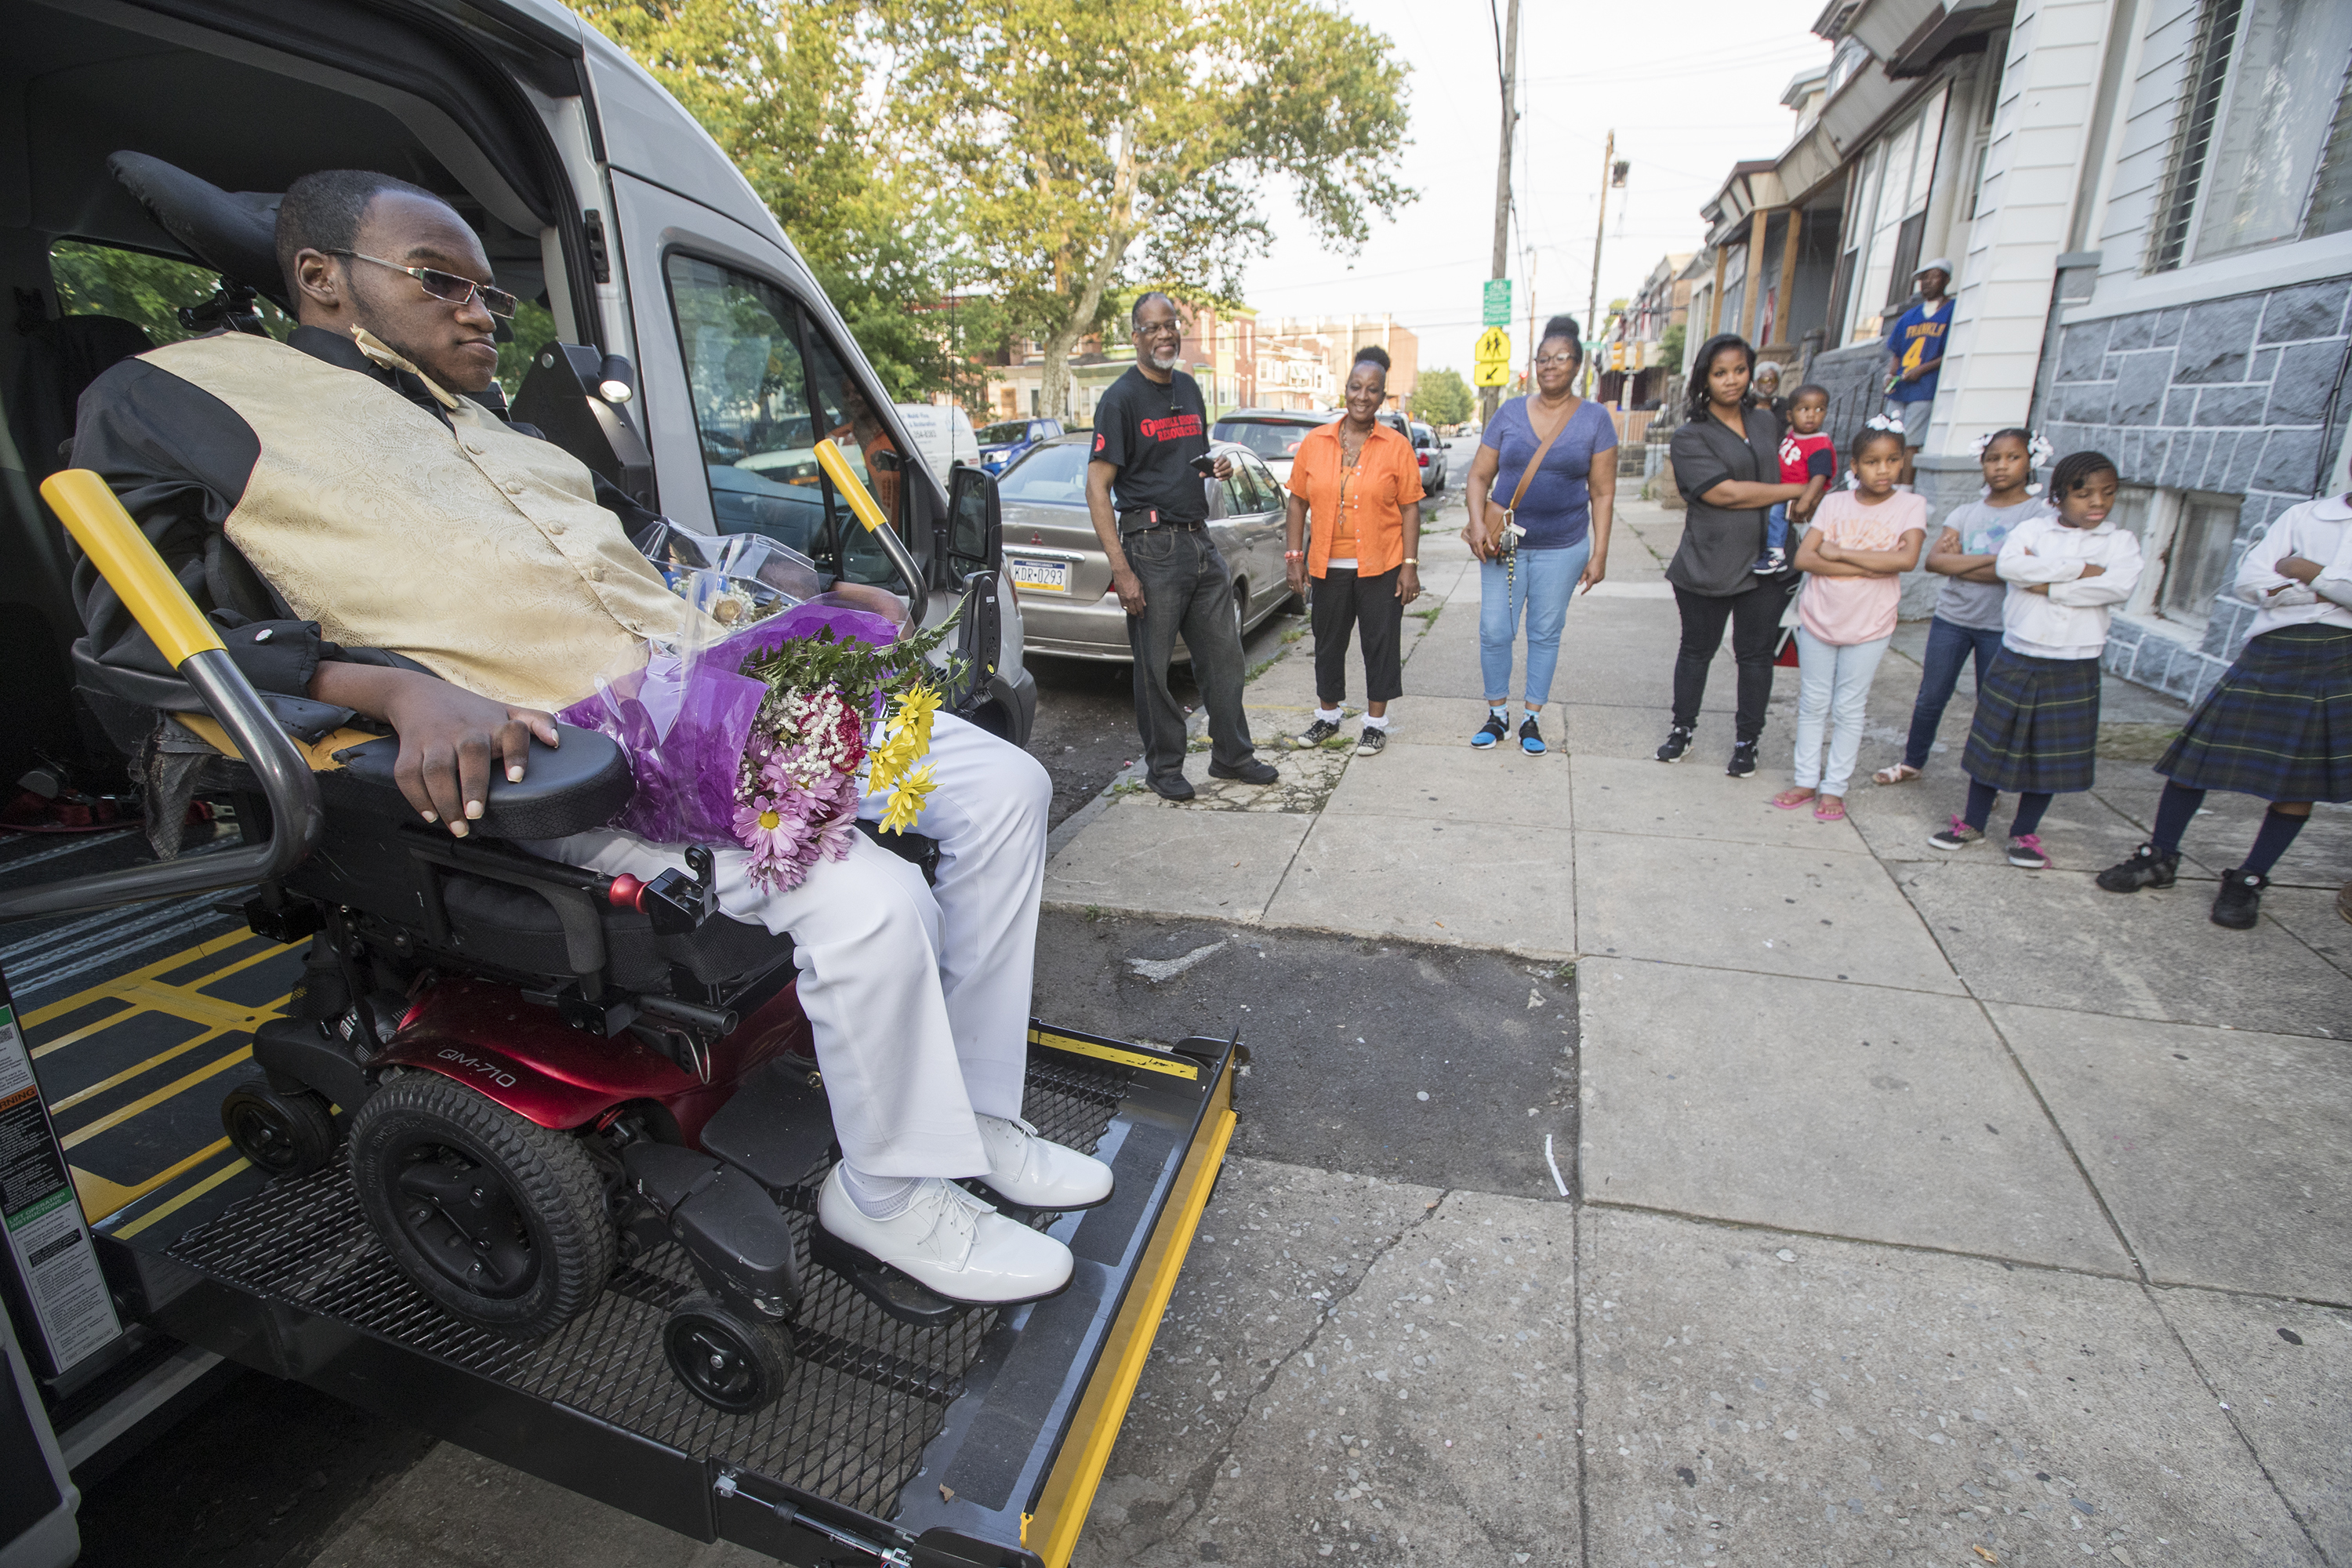 Lariq Byrd, left, was shot and paralyzed the day after Christmas in 2015. He is going to the Gratz High School senior prom with Daamiera Carr and with the help of Magee Rehab, which hooked him up with a wheelchair accessible van on June 1, 2018. He arrives in the van at his date's home. CHARLES FOX / Staff Photographer